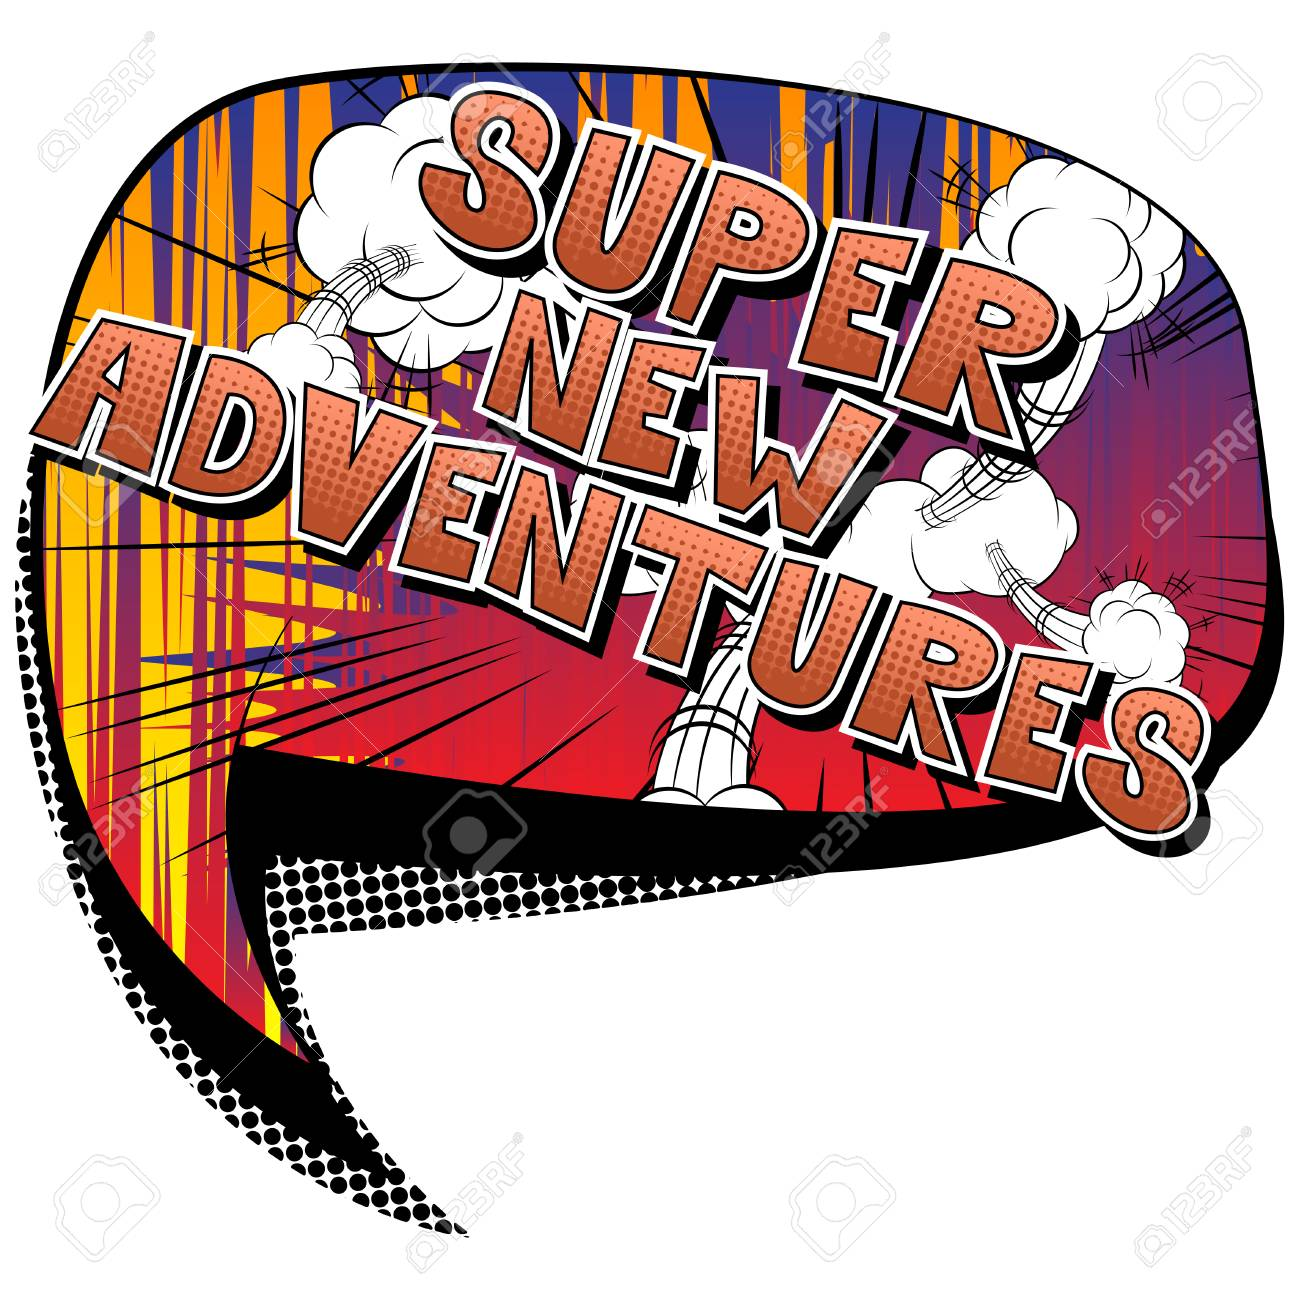 Super New Adventures - Vector illustrated comic book style phrase